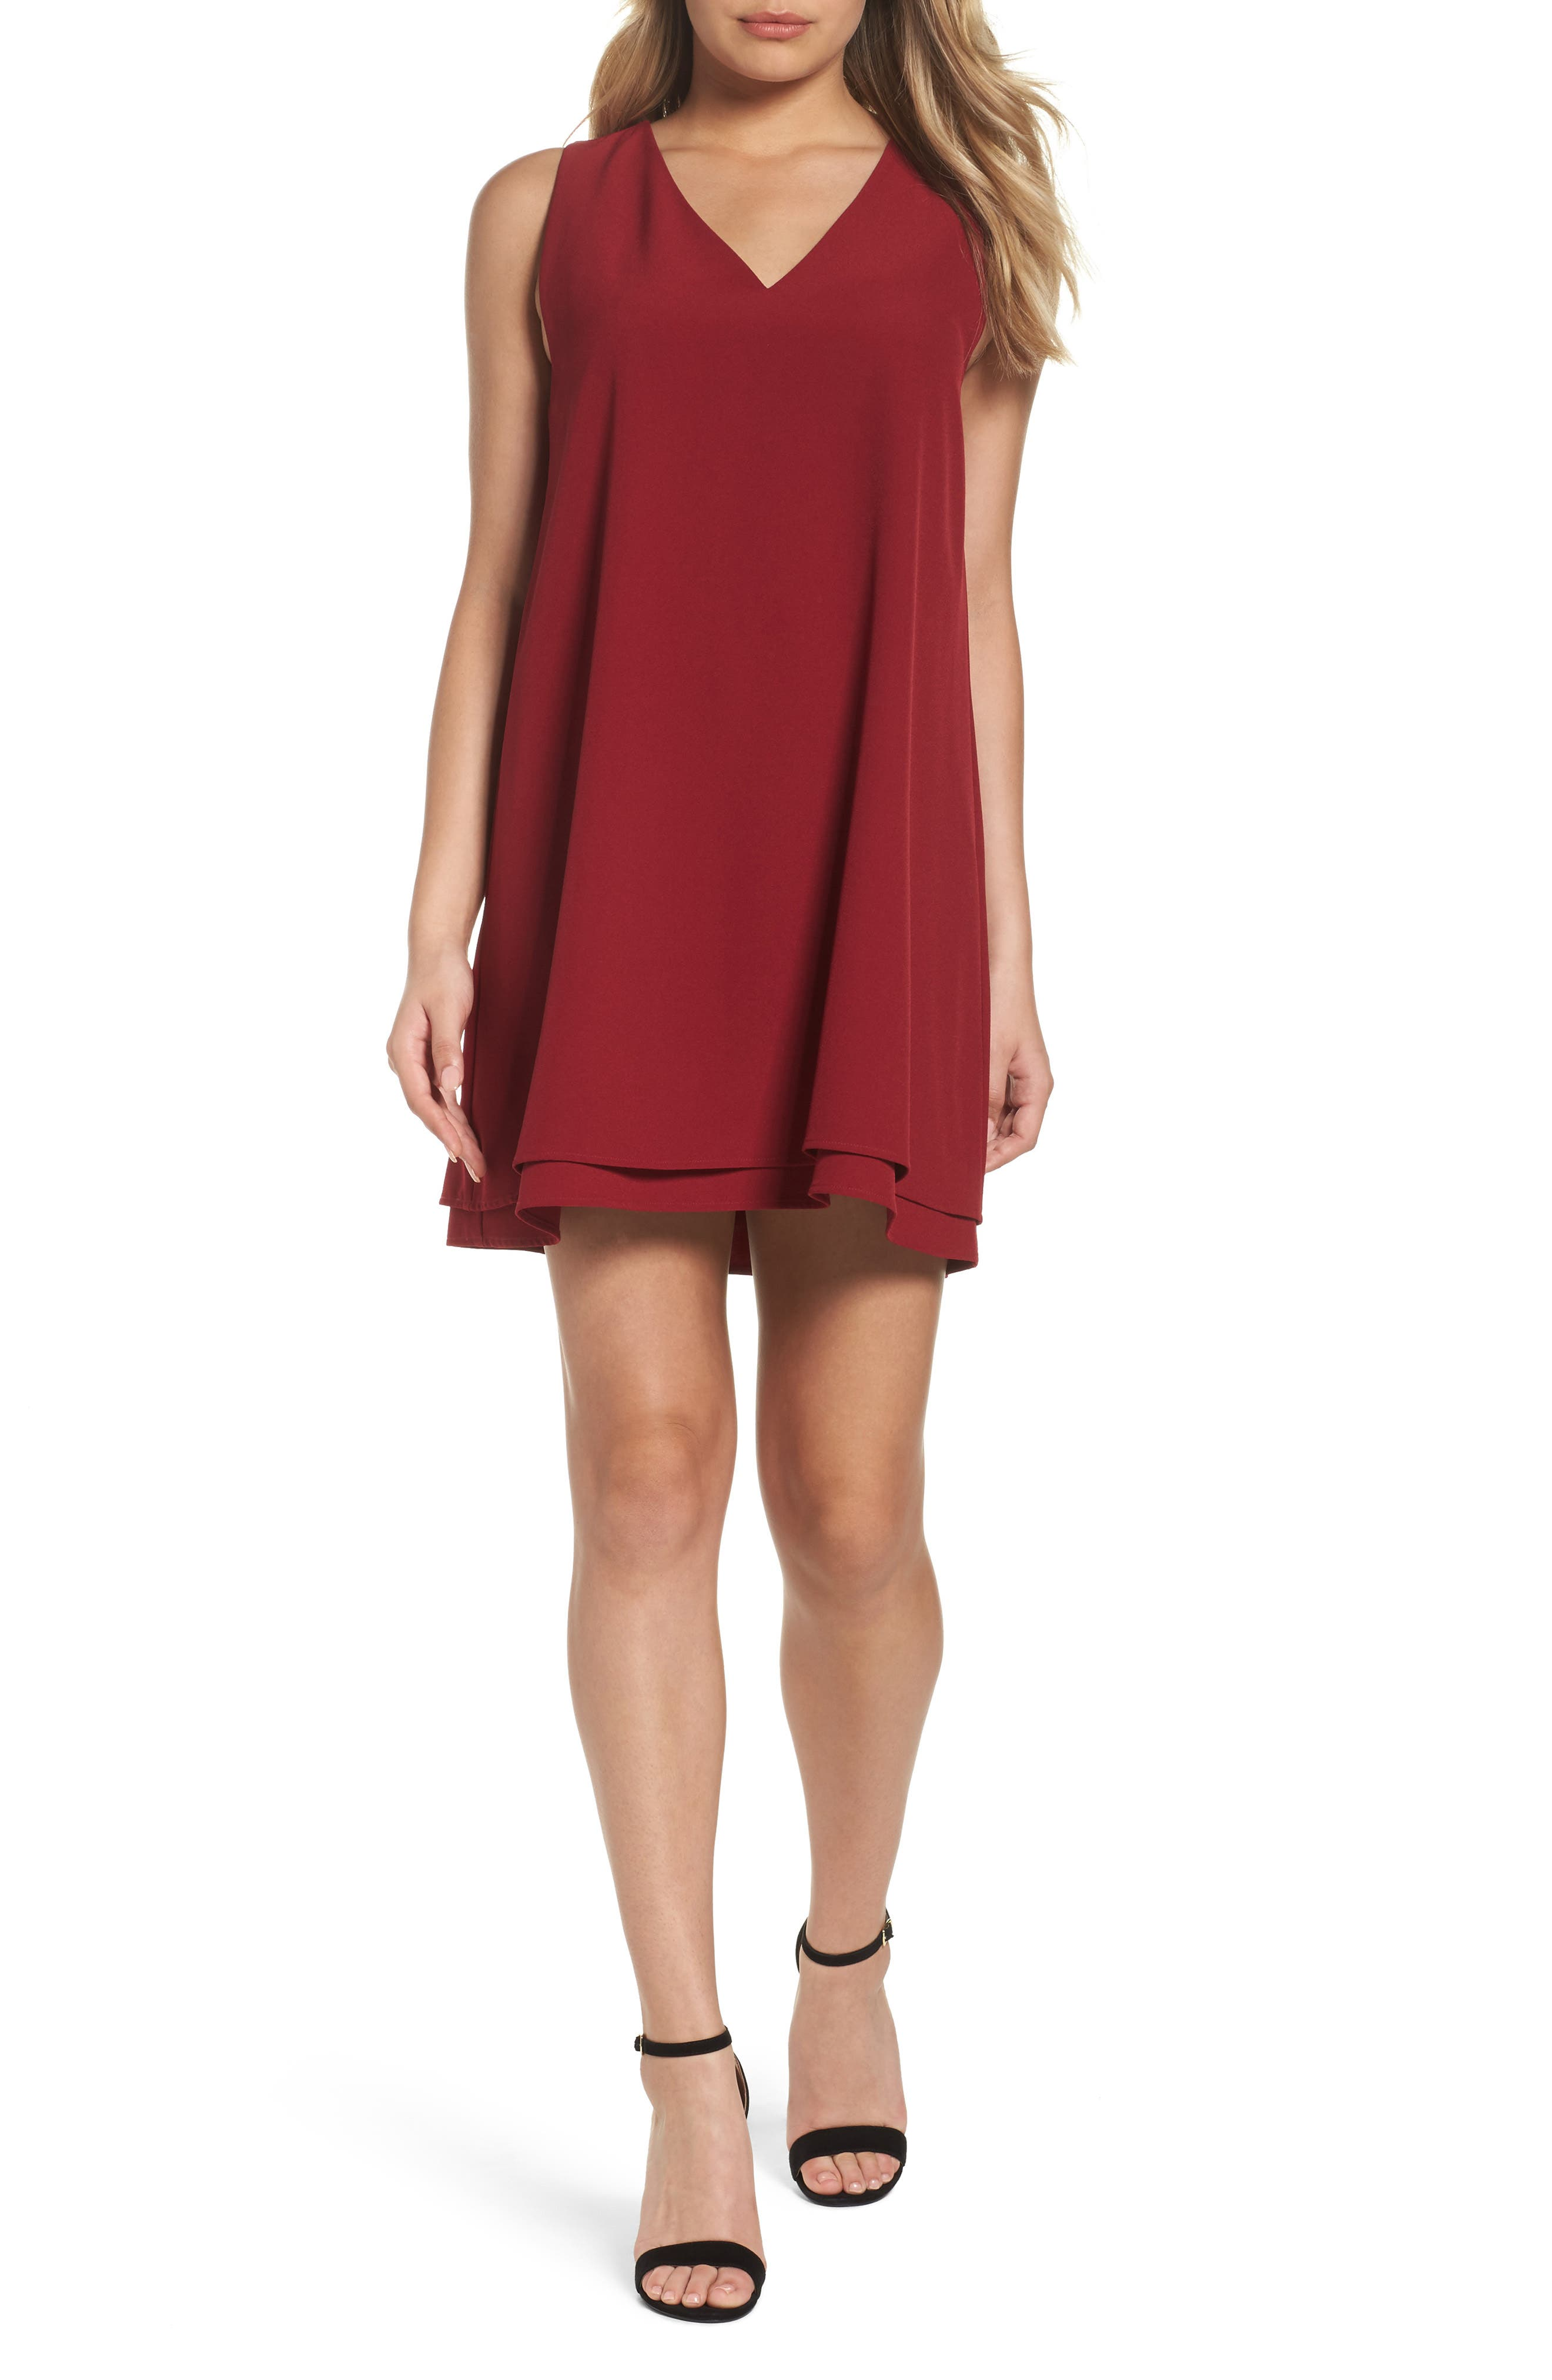 BB Dakota 'Palma' Crepe Shift Dress